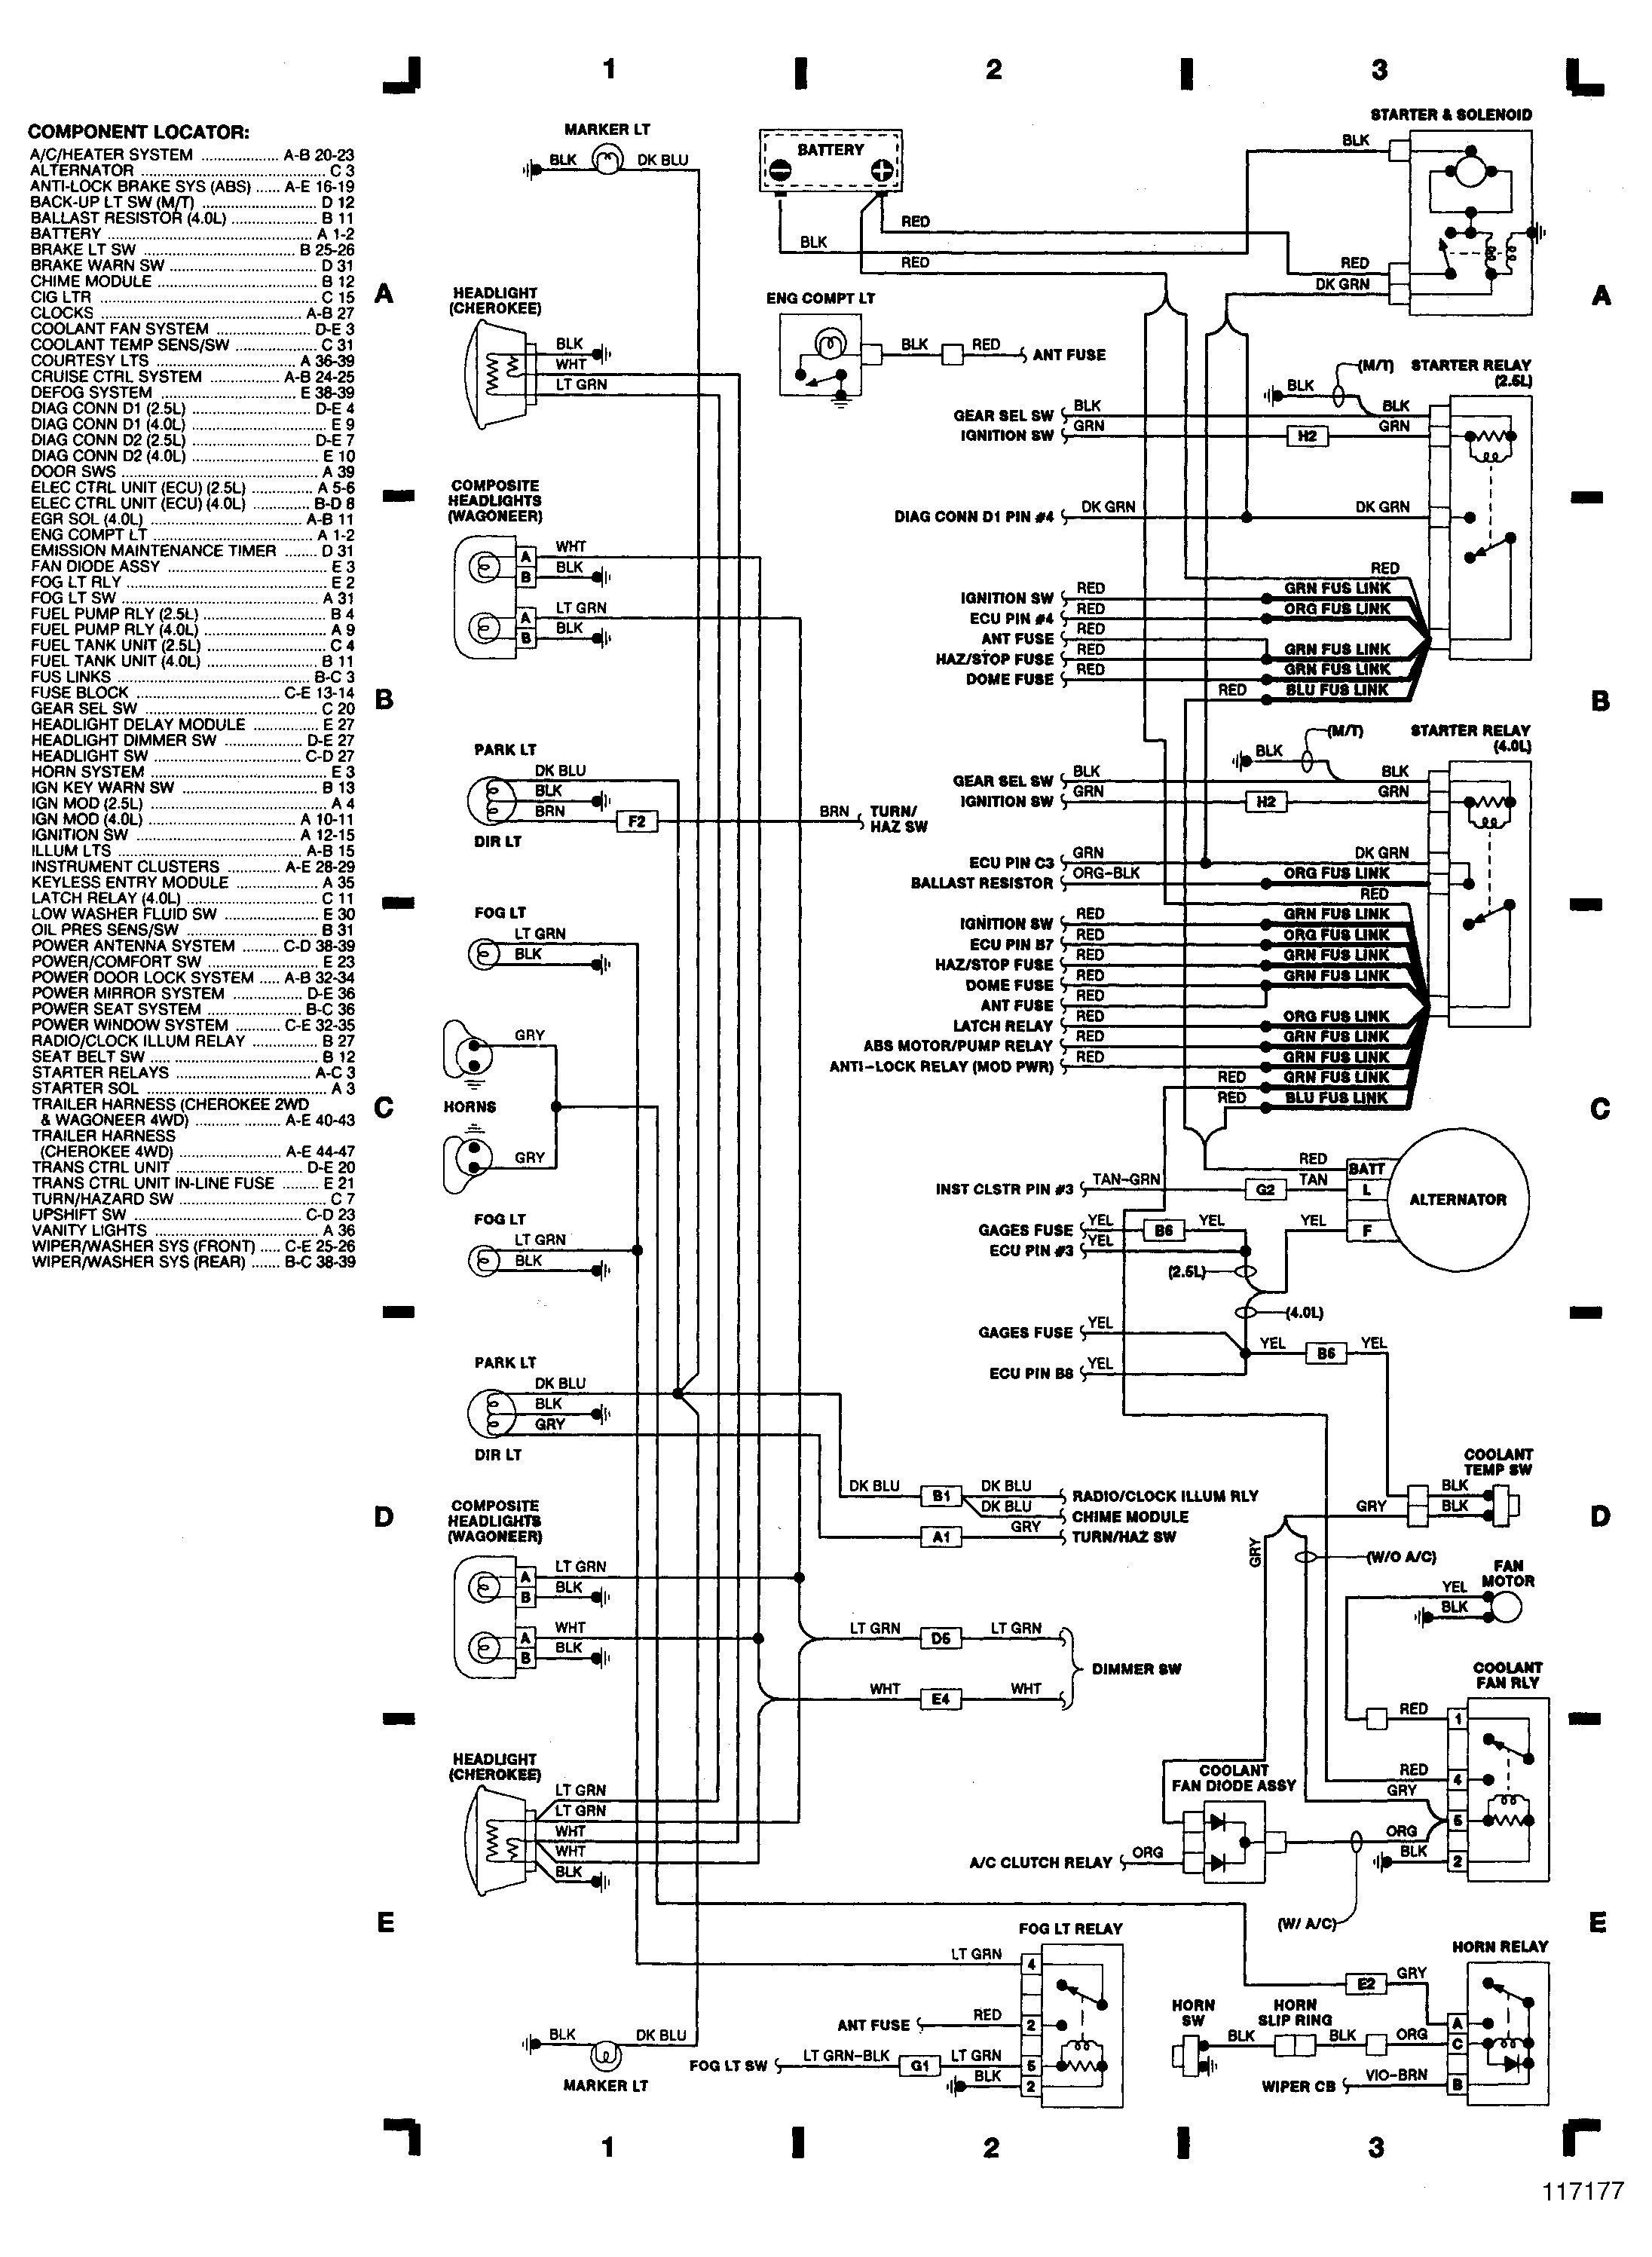 2002 Grand Cherokee Fan Schematic Awesome Wiring Diagram Jeep Grand Cherokee Diagrams Of 2002 Grand Cherokee Fan Schematic